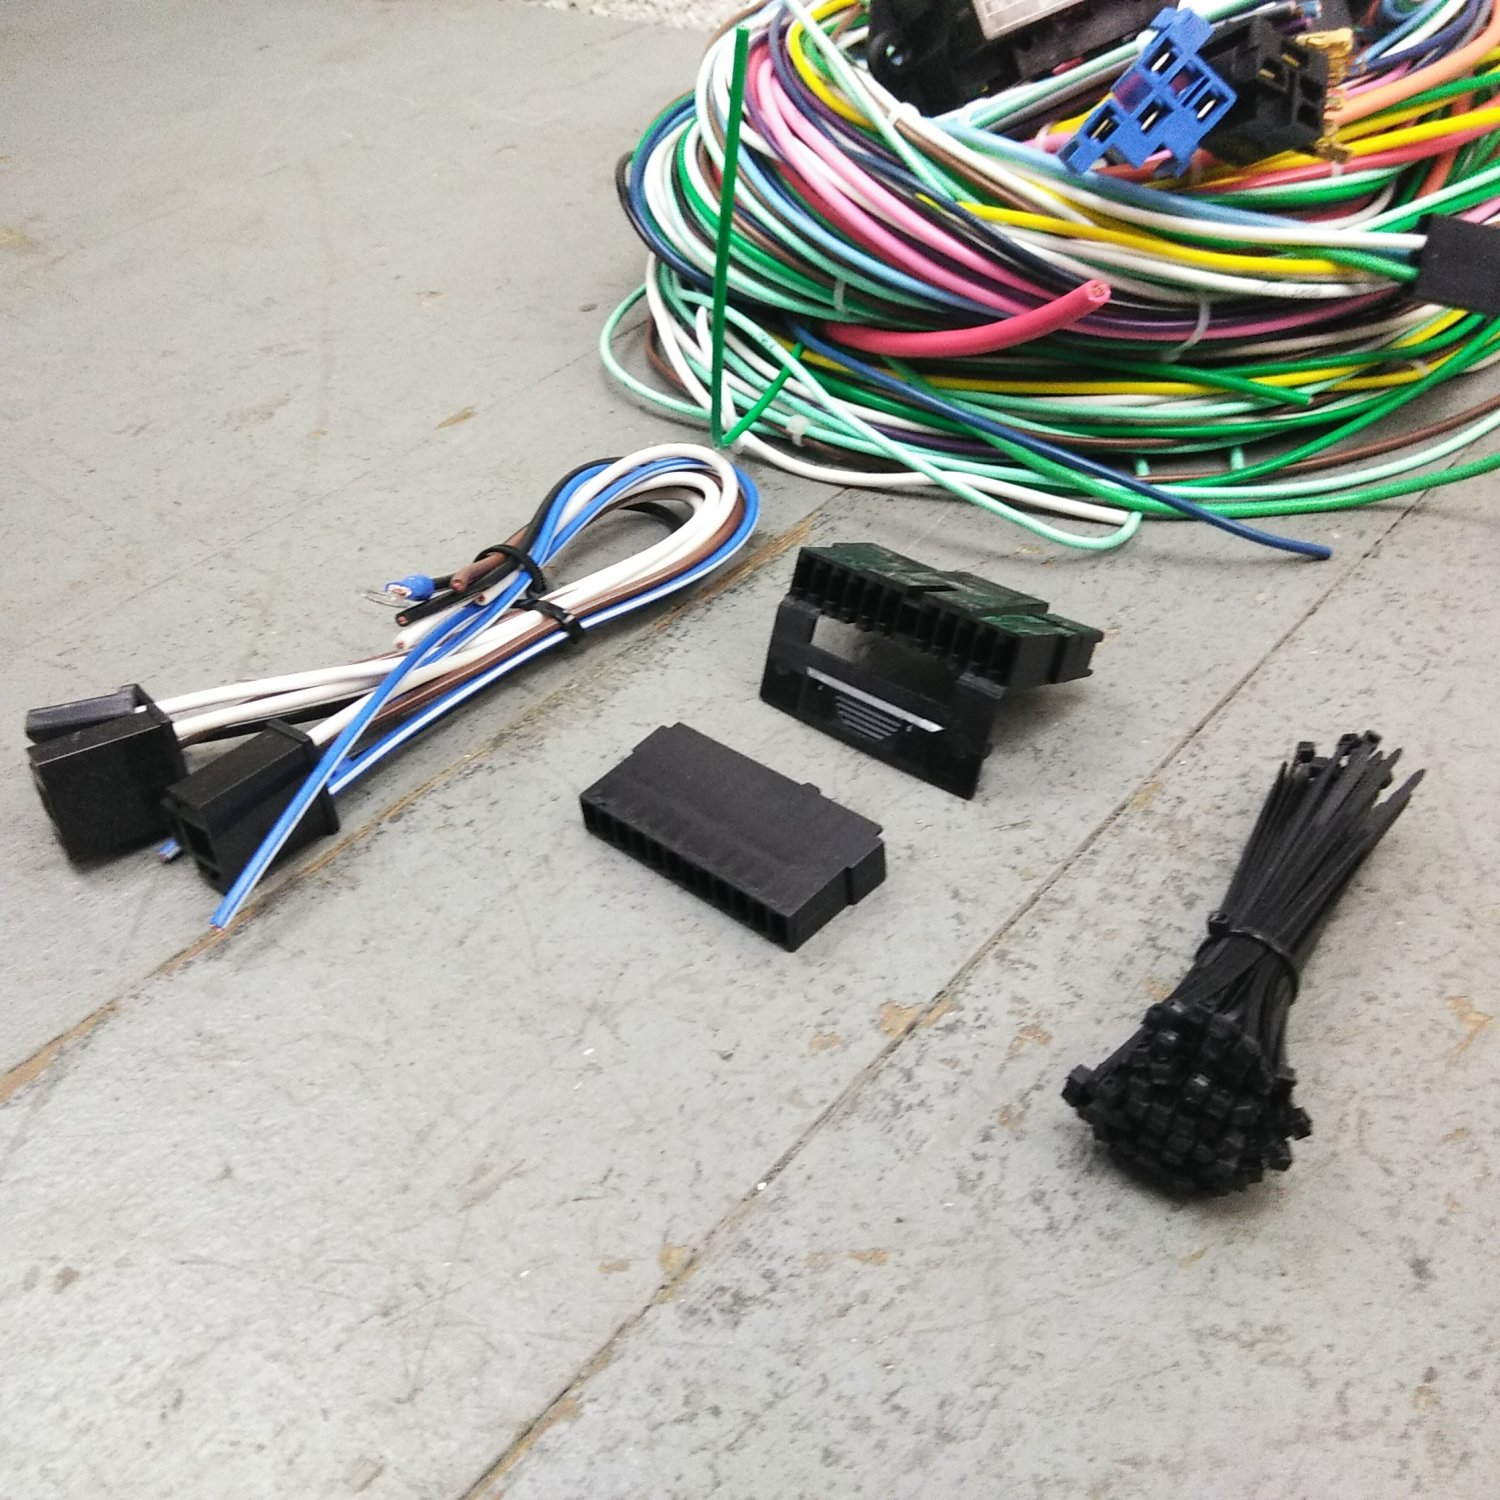 hight resolution of 1967 1970 ford mustang wire harness upgrade kit fits painless fuse compact new